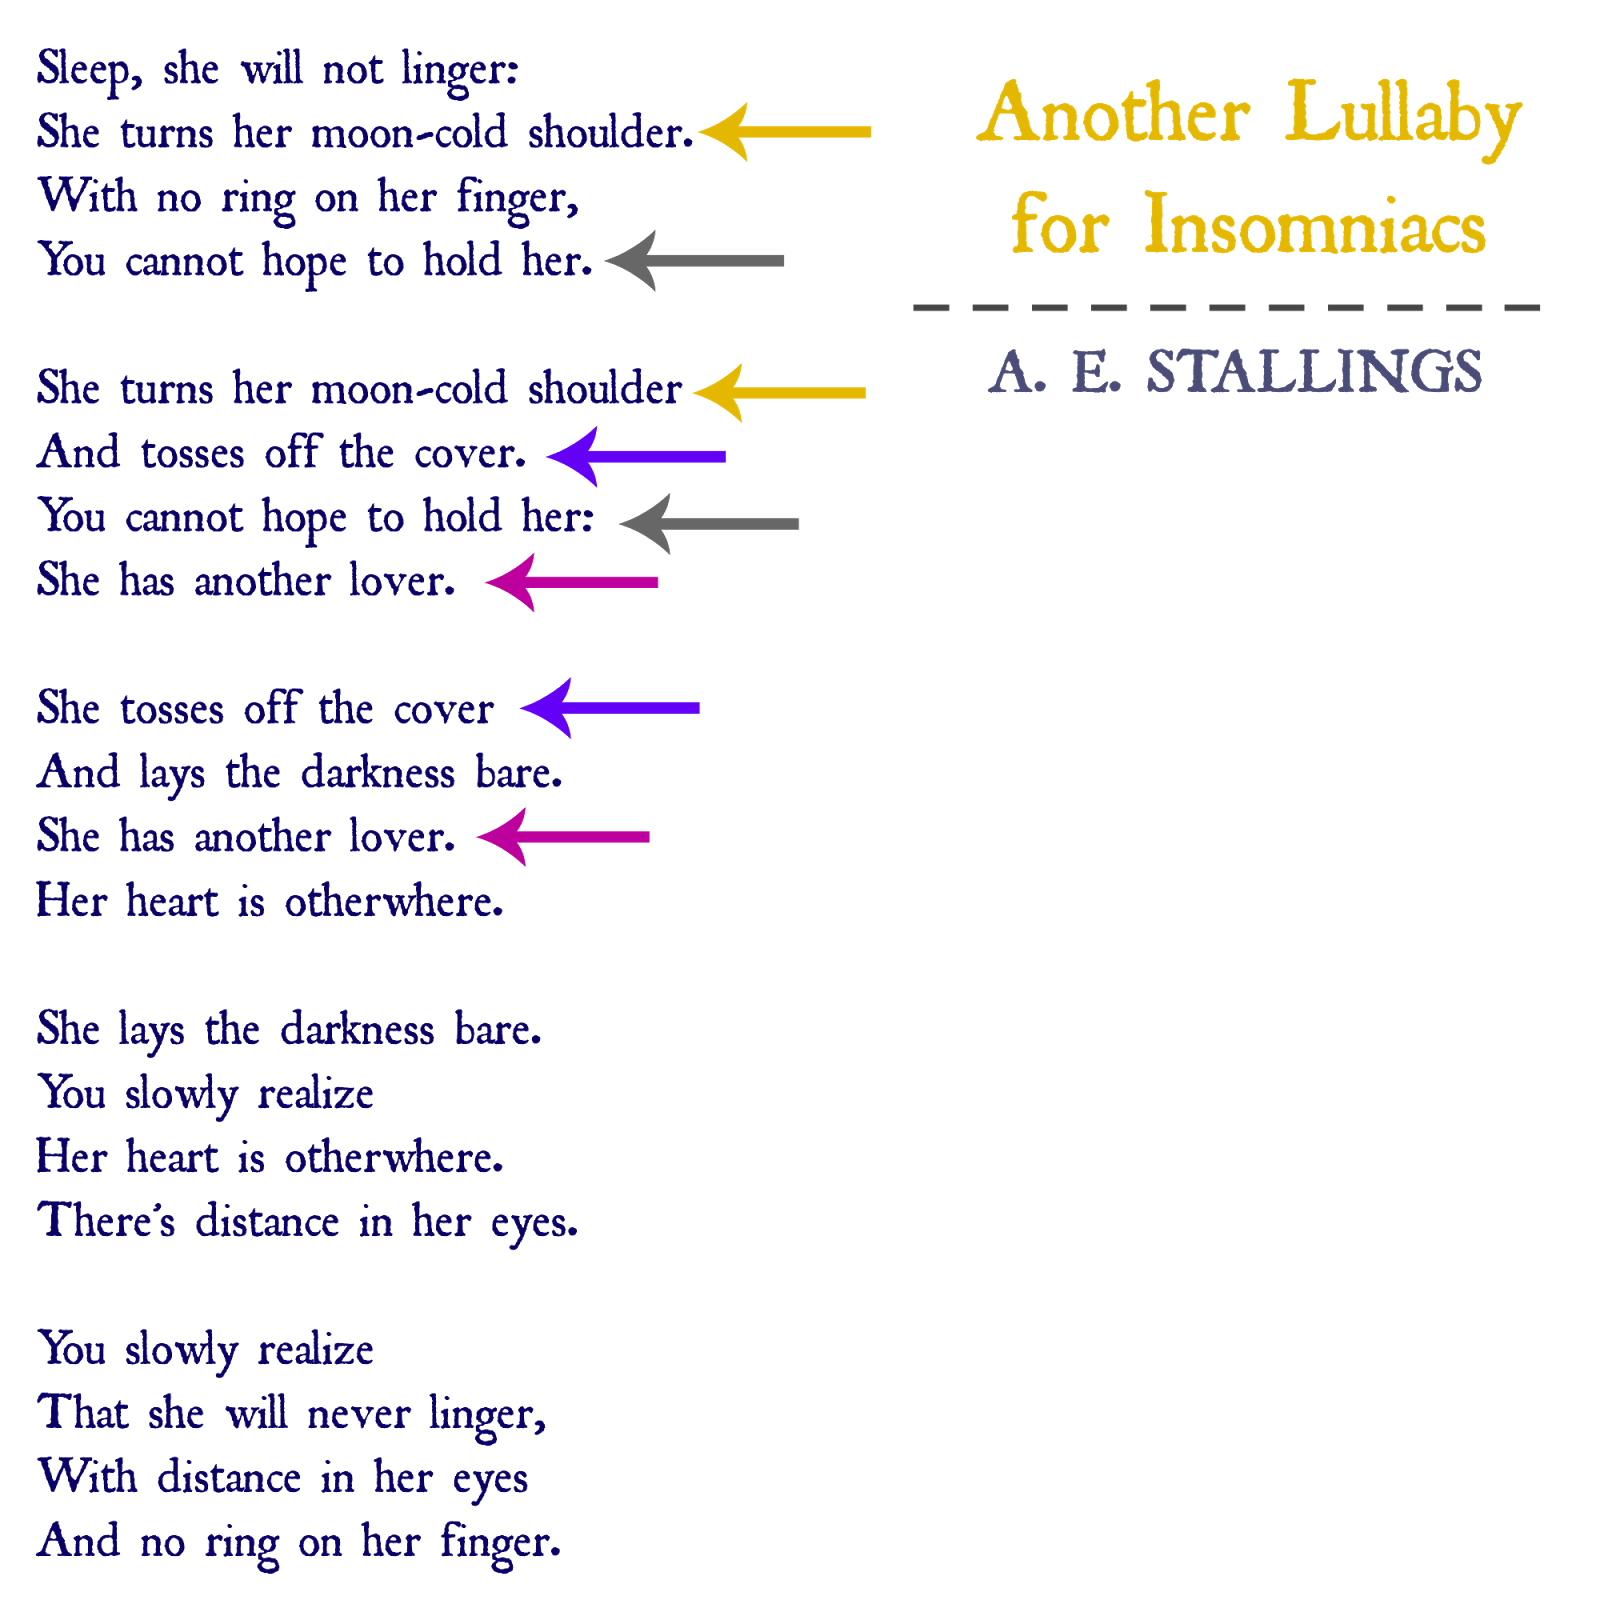 Poem Clipart Stanza Poem Stanza Transparent Free For Download On Webstockreview 2021 One of the aspects of lyric poetry with which some students may feel uneasy is its verse or stanza form. poem clipart stanza poem stanza